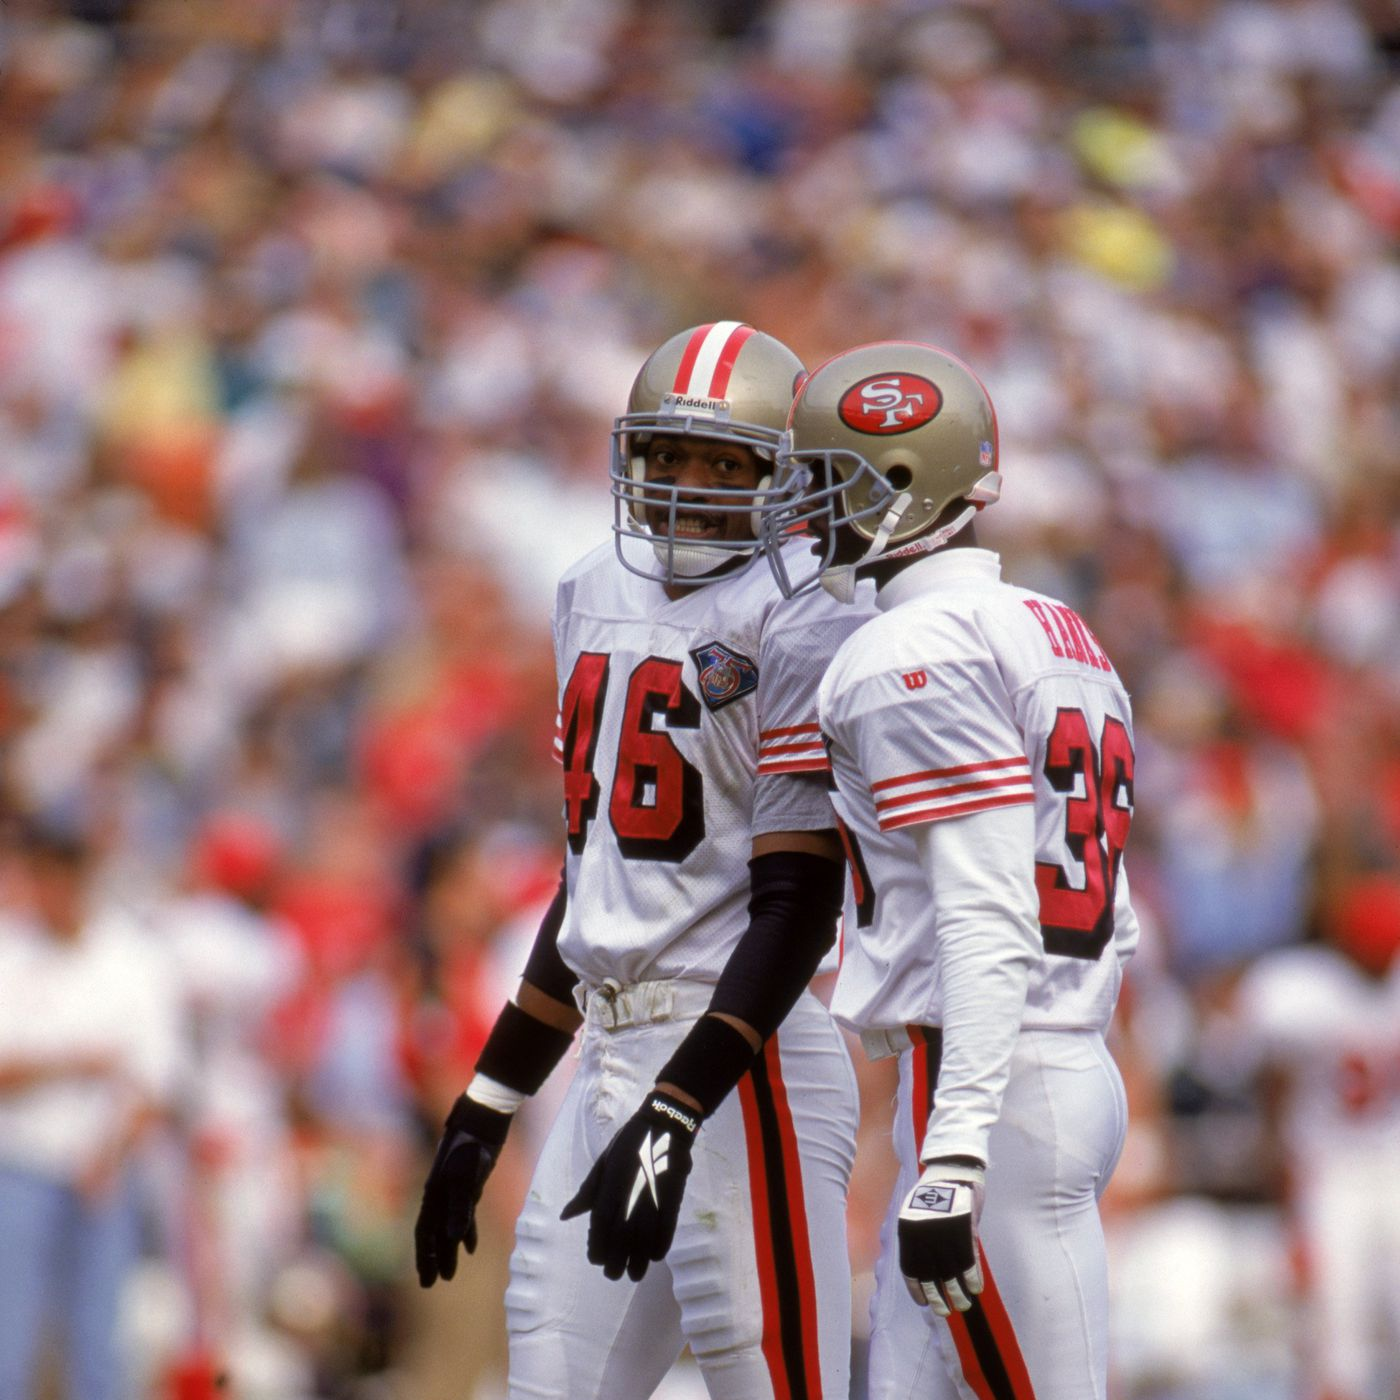 4d2e0717e3e 49ers confirm they will announce alternate 'throwback' uniforms on  Wednesday - Niners Nation